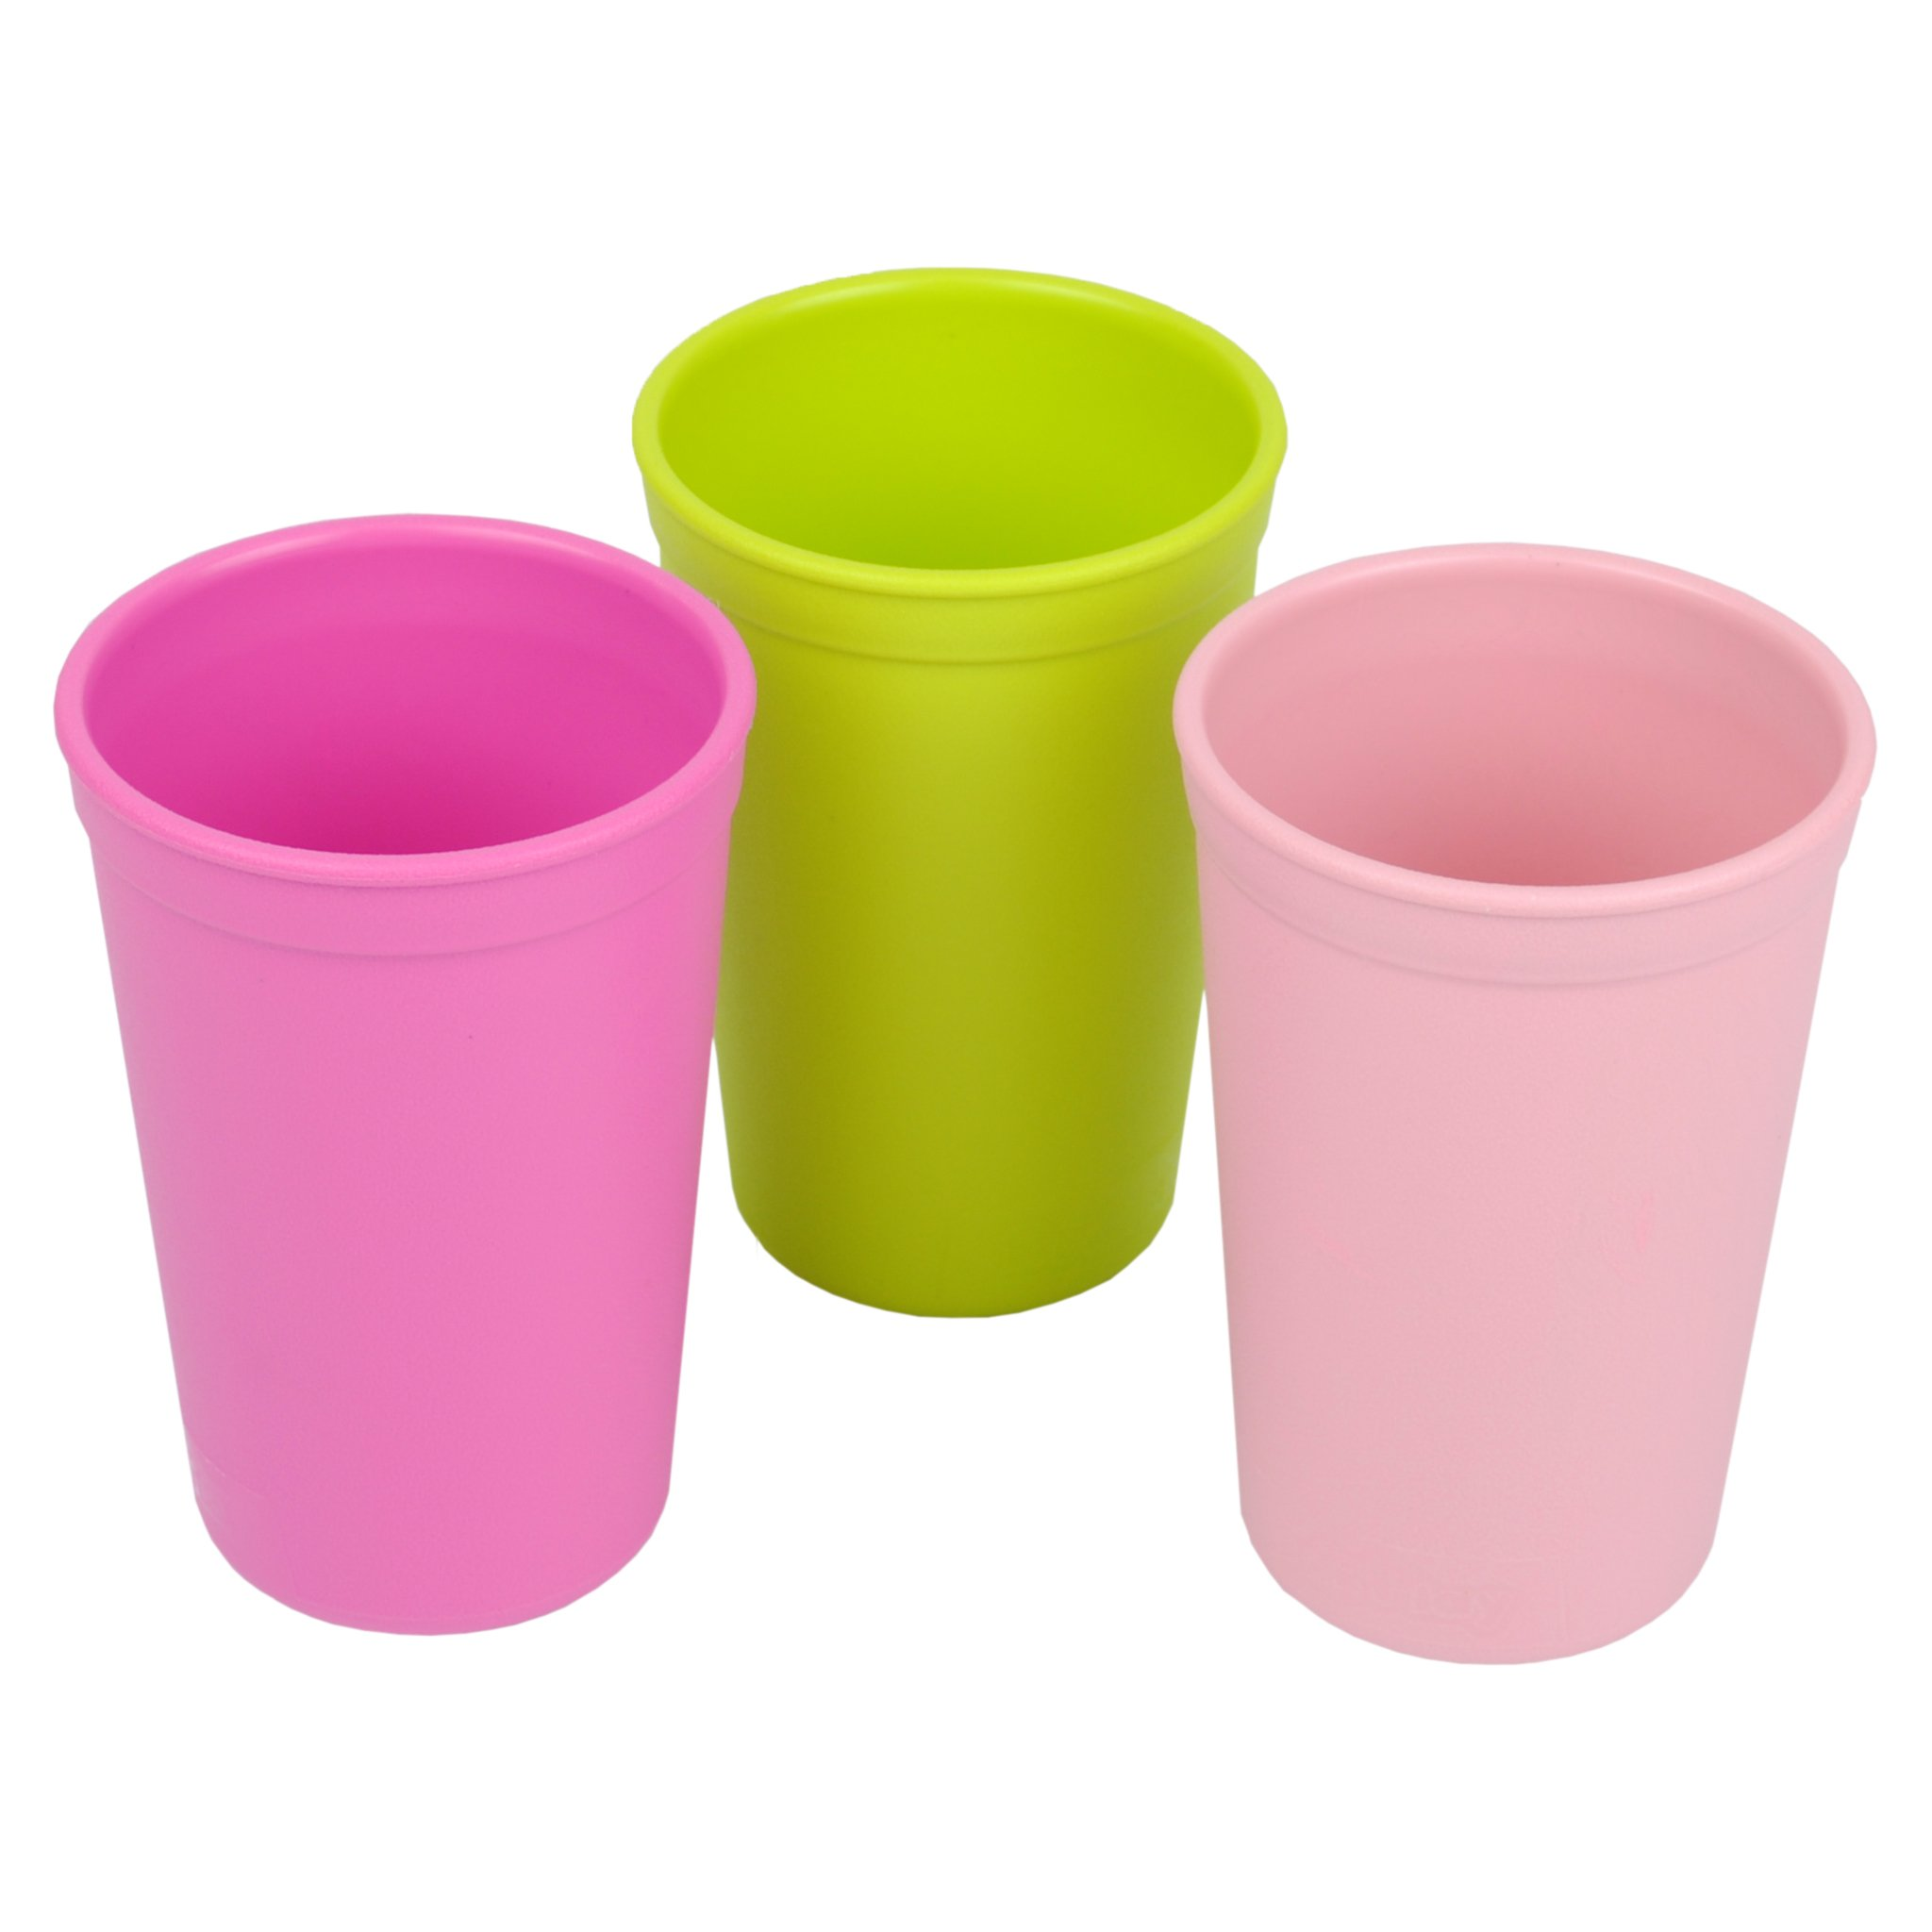 Re-Play 3pk - 9oz. Drinking Cups | Made in USA from Eco Friendly Heavyweight Recycled Milk Jugs - Virtually Indestructible | For all ages | Bright Pink, Lime Green, Blush Pink | Tulip